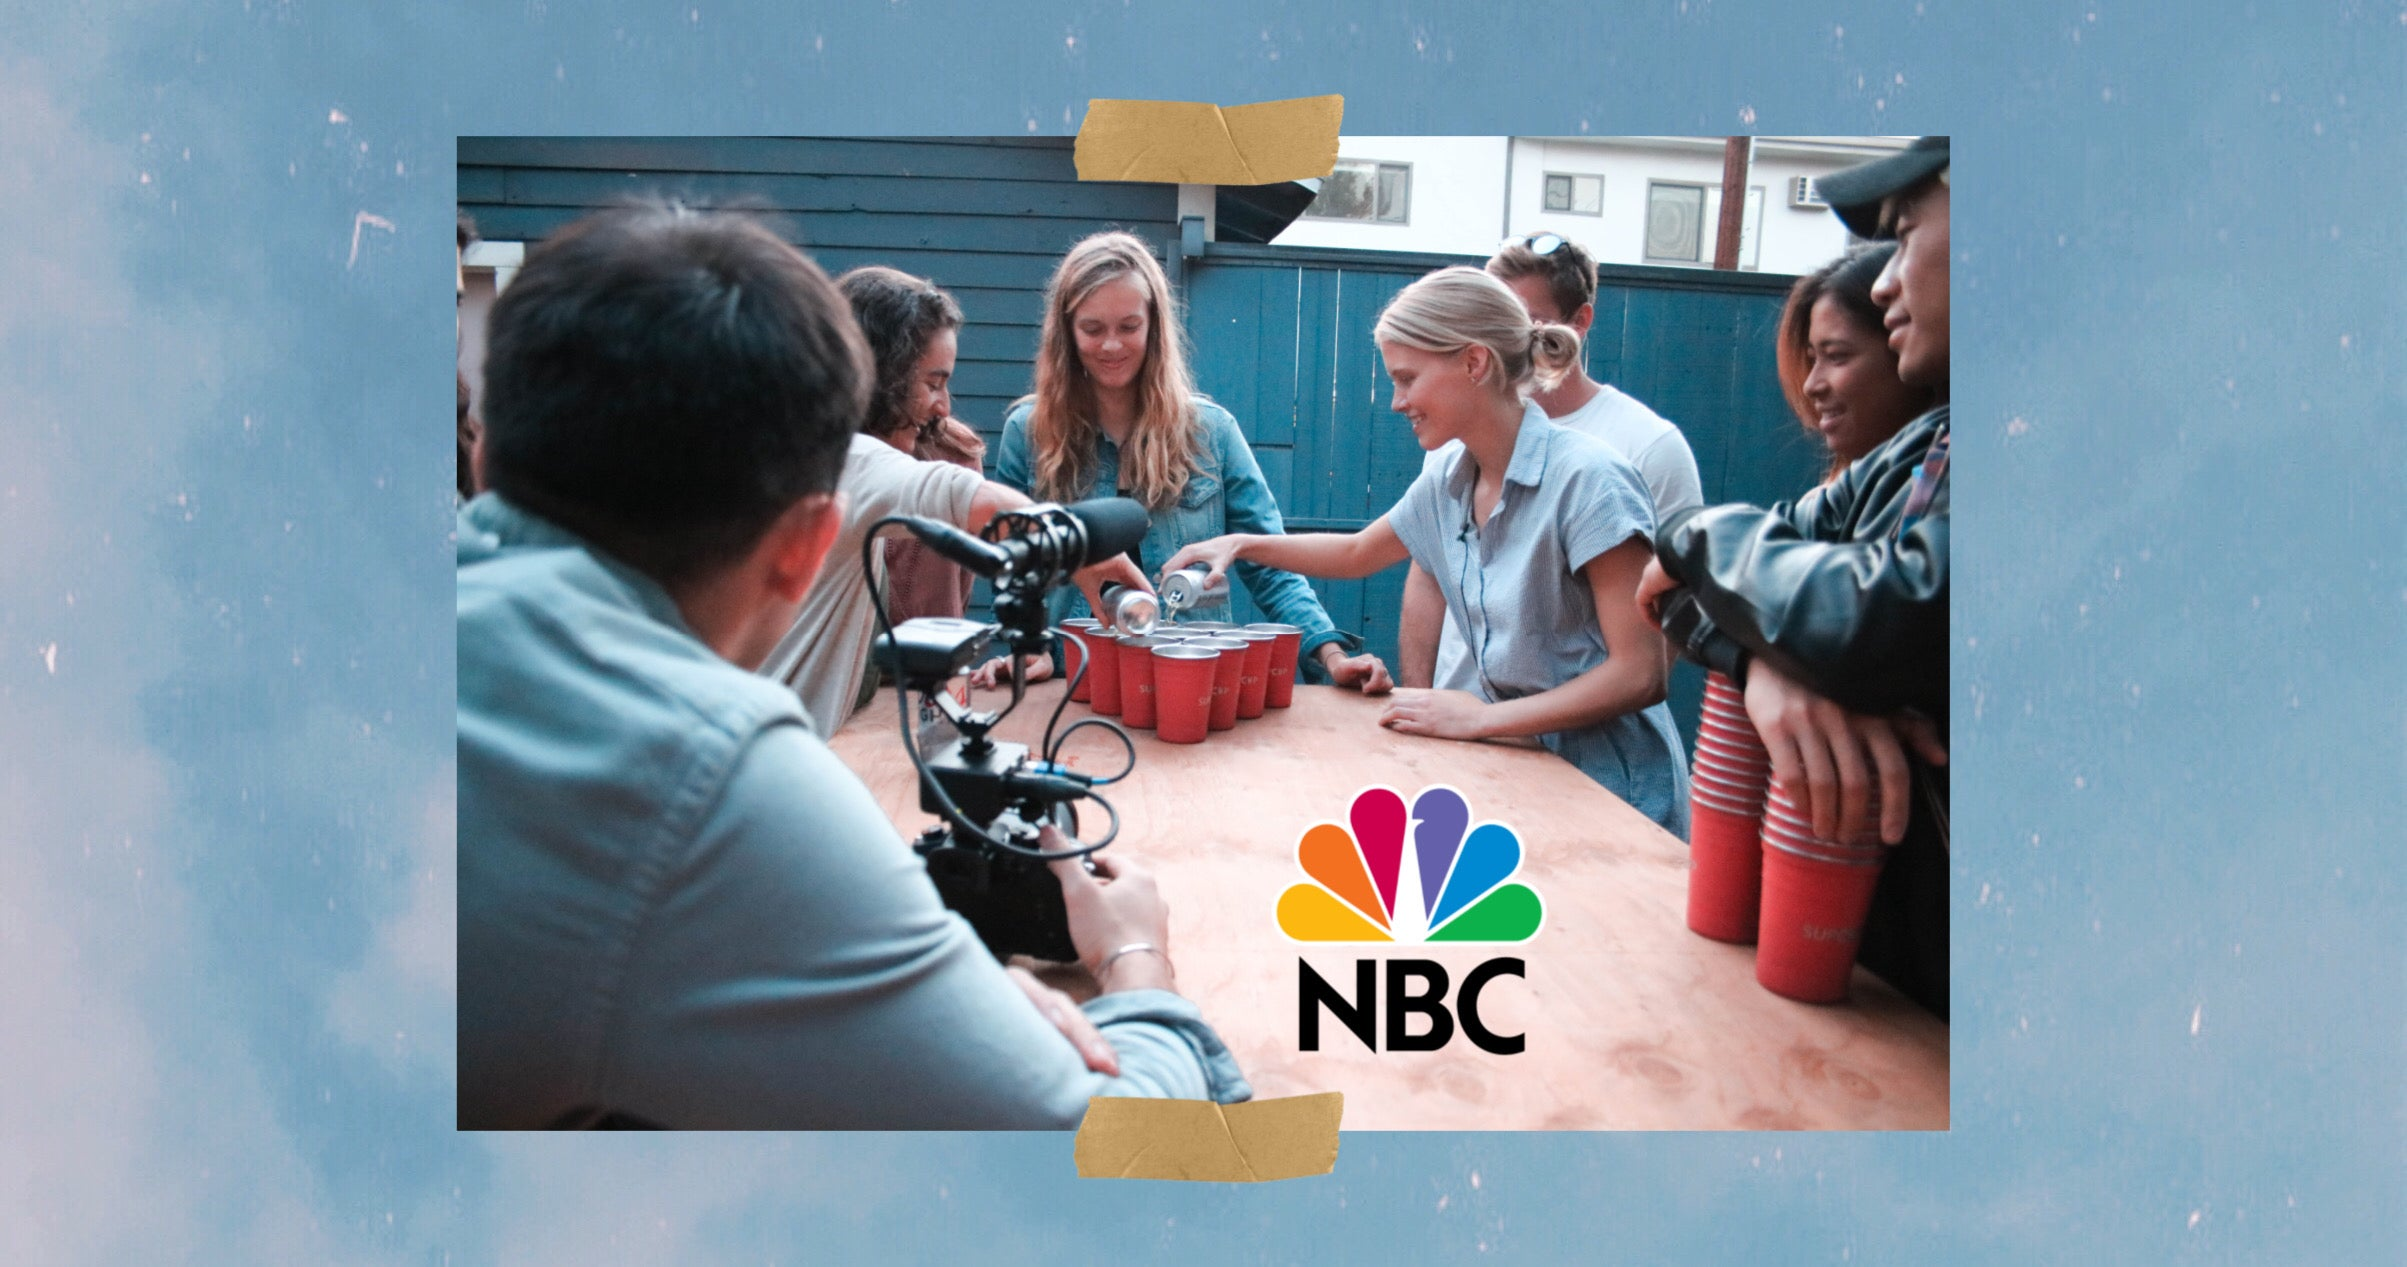 NBC filming around a table